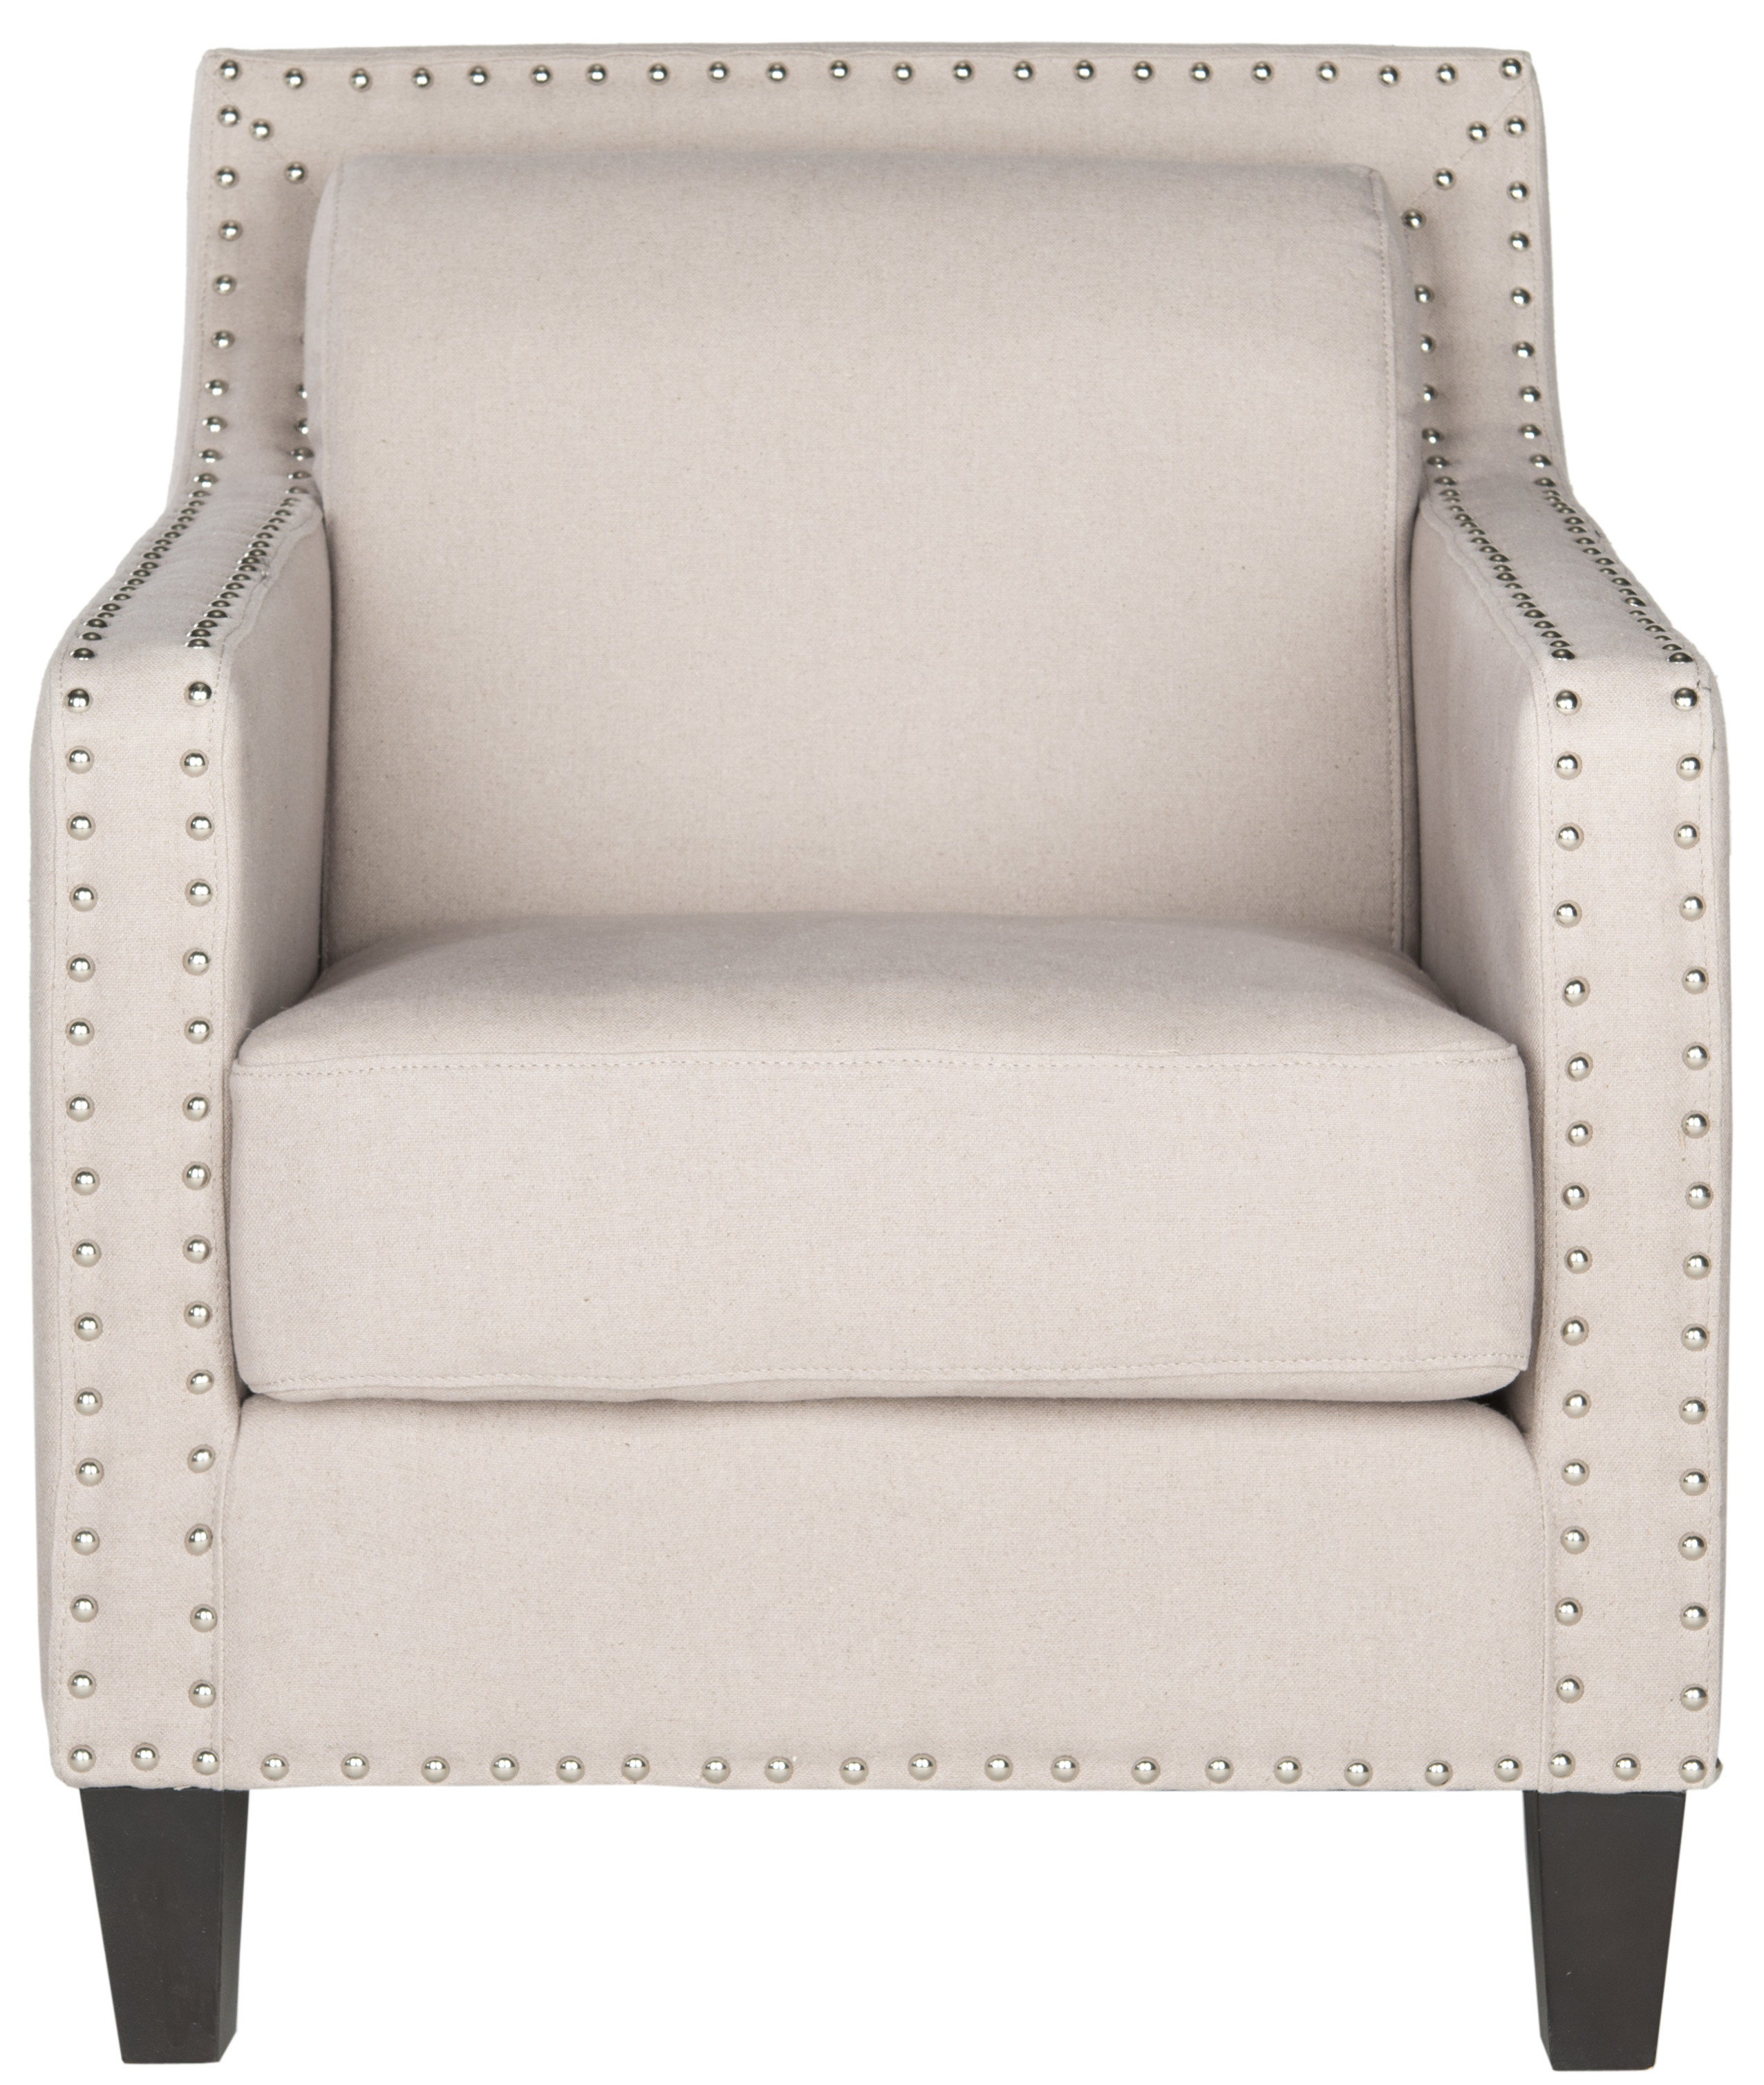 Wayfair Within Best And Newest Lucy Grey Sofa Chairs (Gallery 9 of 20)